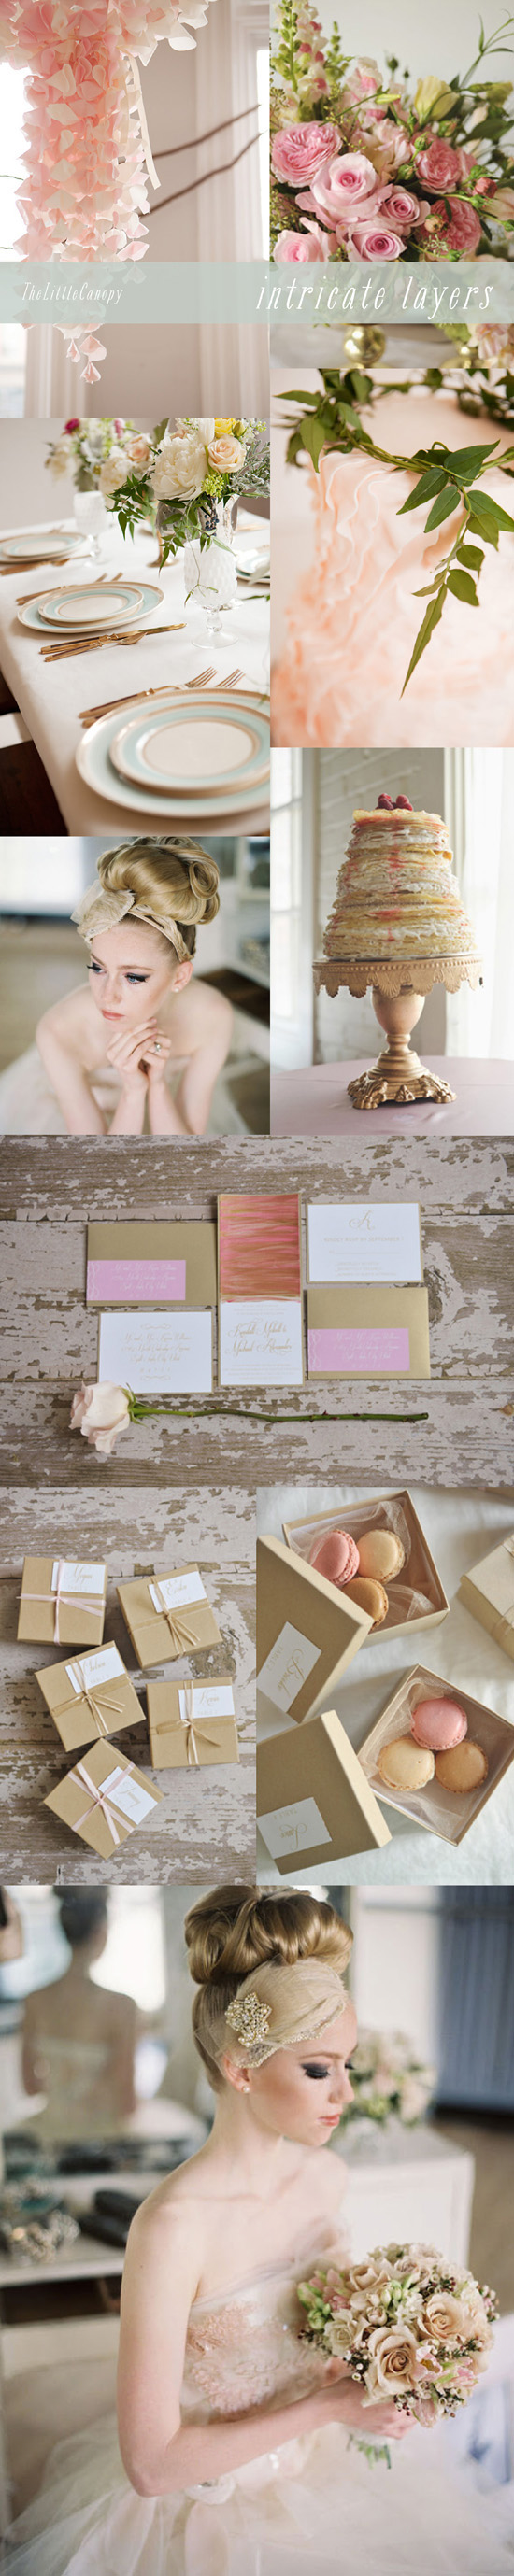 It's not just about what colors you use, it's also about how you use them! Layering is key to a romantic, intricate feel on your special day! From flowers to watercolored stationery, from your hair to your dress, you know you'll remember the littlest details for years to come.